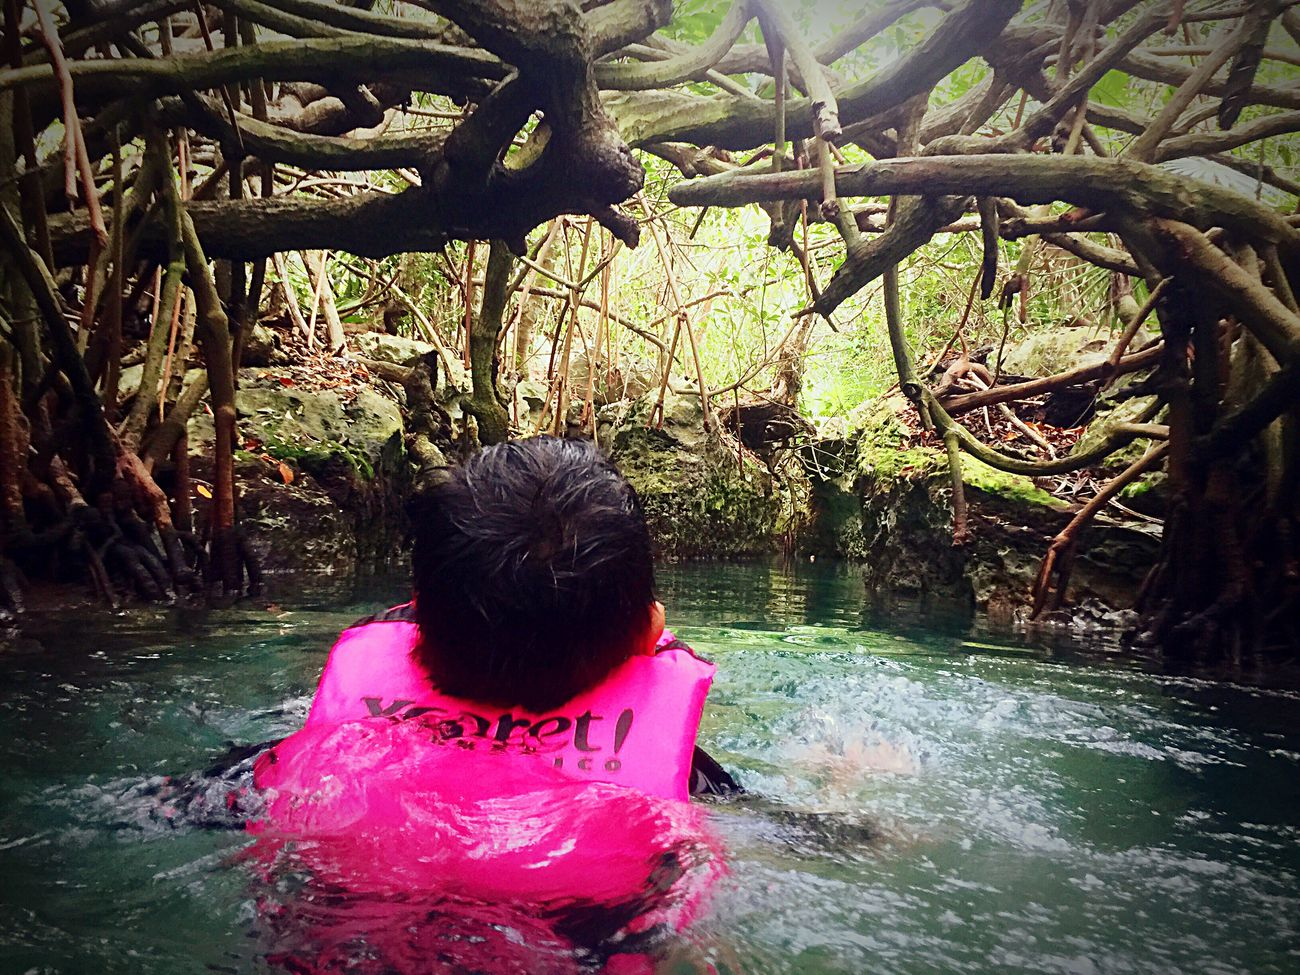 Cenotes Things I Like Check This Out Mayan Relaxing Snorkeling Escaping Enjoying Life Quality Time Swimming Hanging Out That's Me Taking Photos